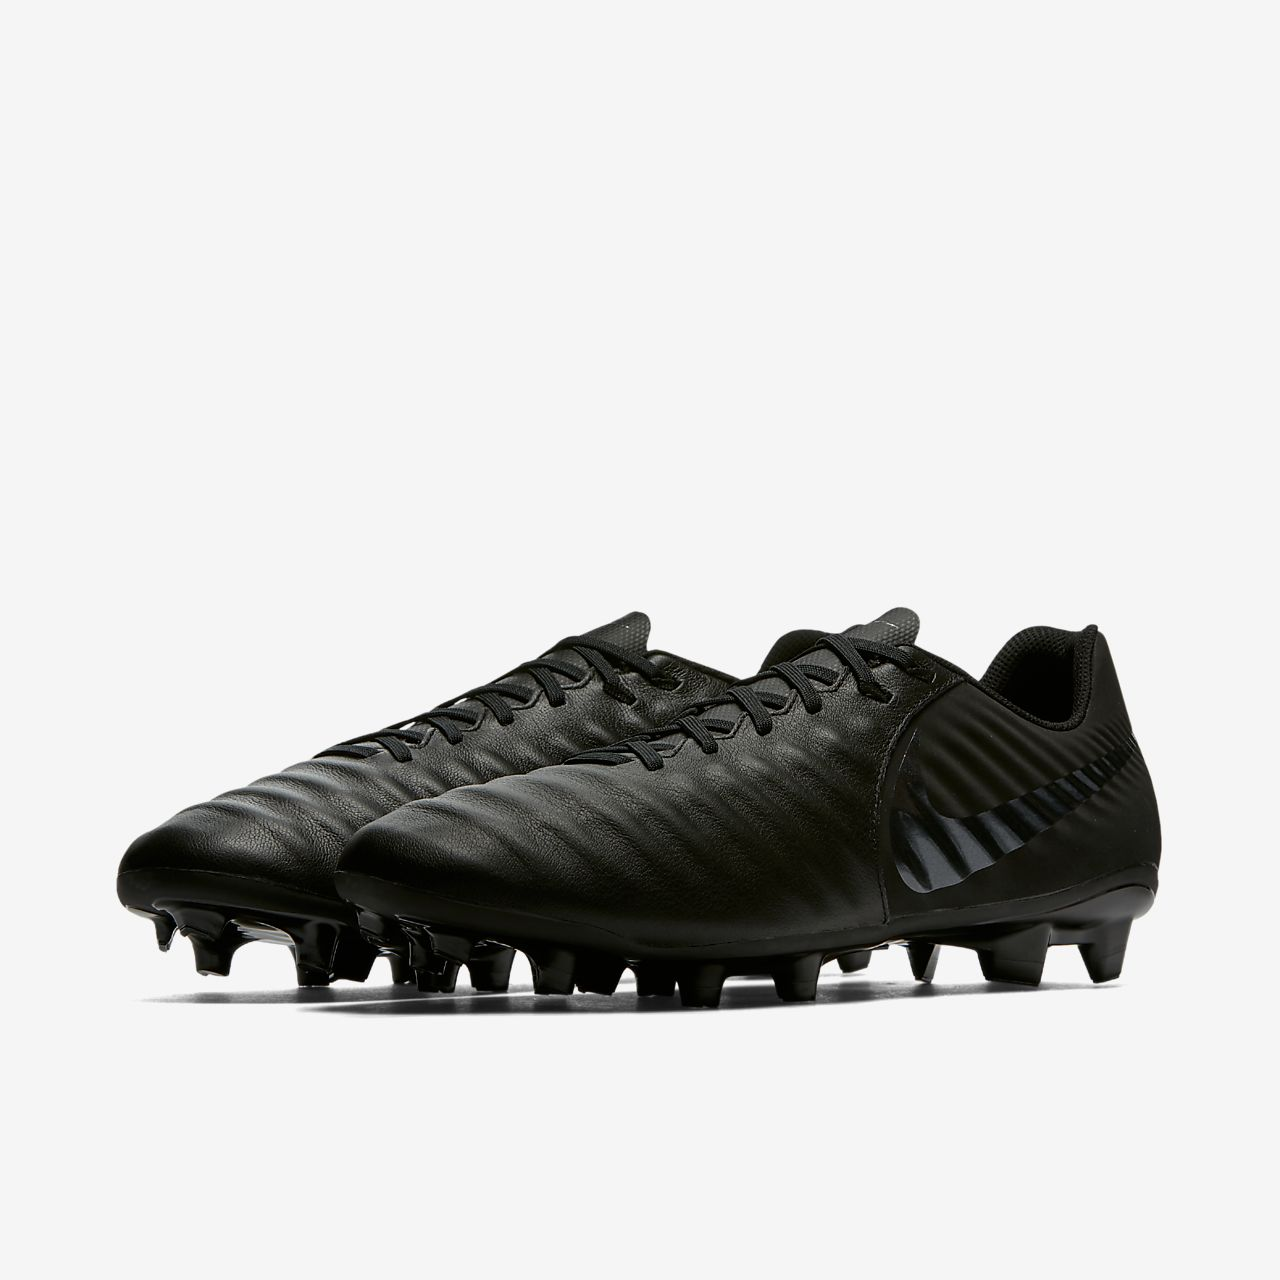 on sale c3272 4f6c6 ... nike tiempo legend vii academy firm ground soccer cleat